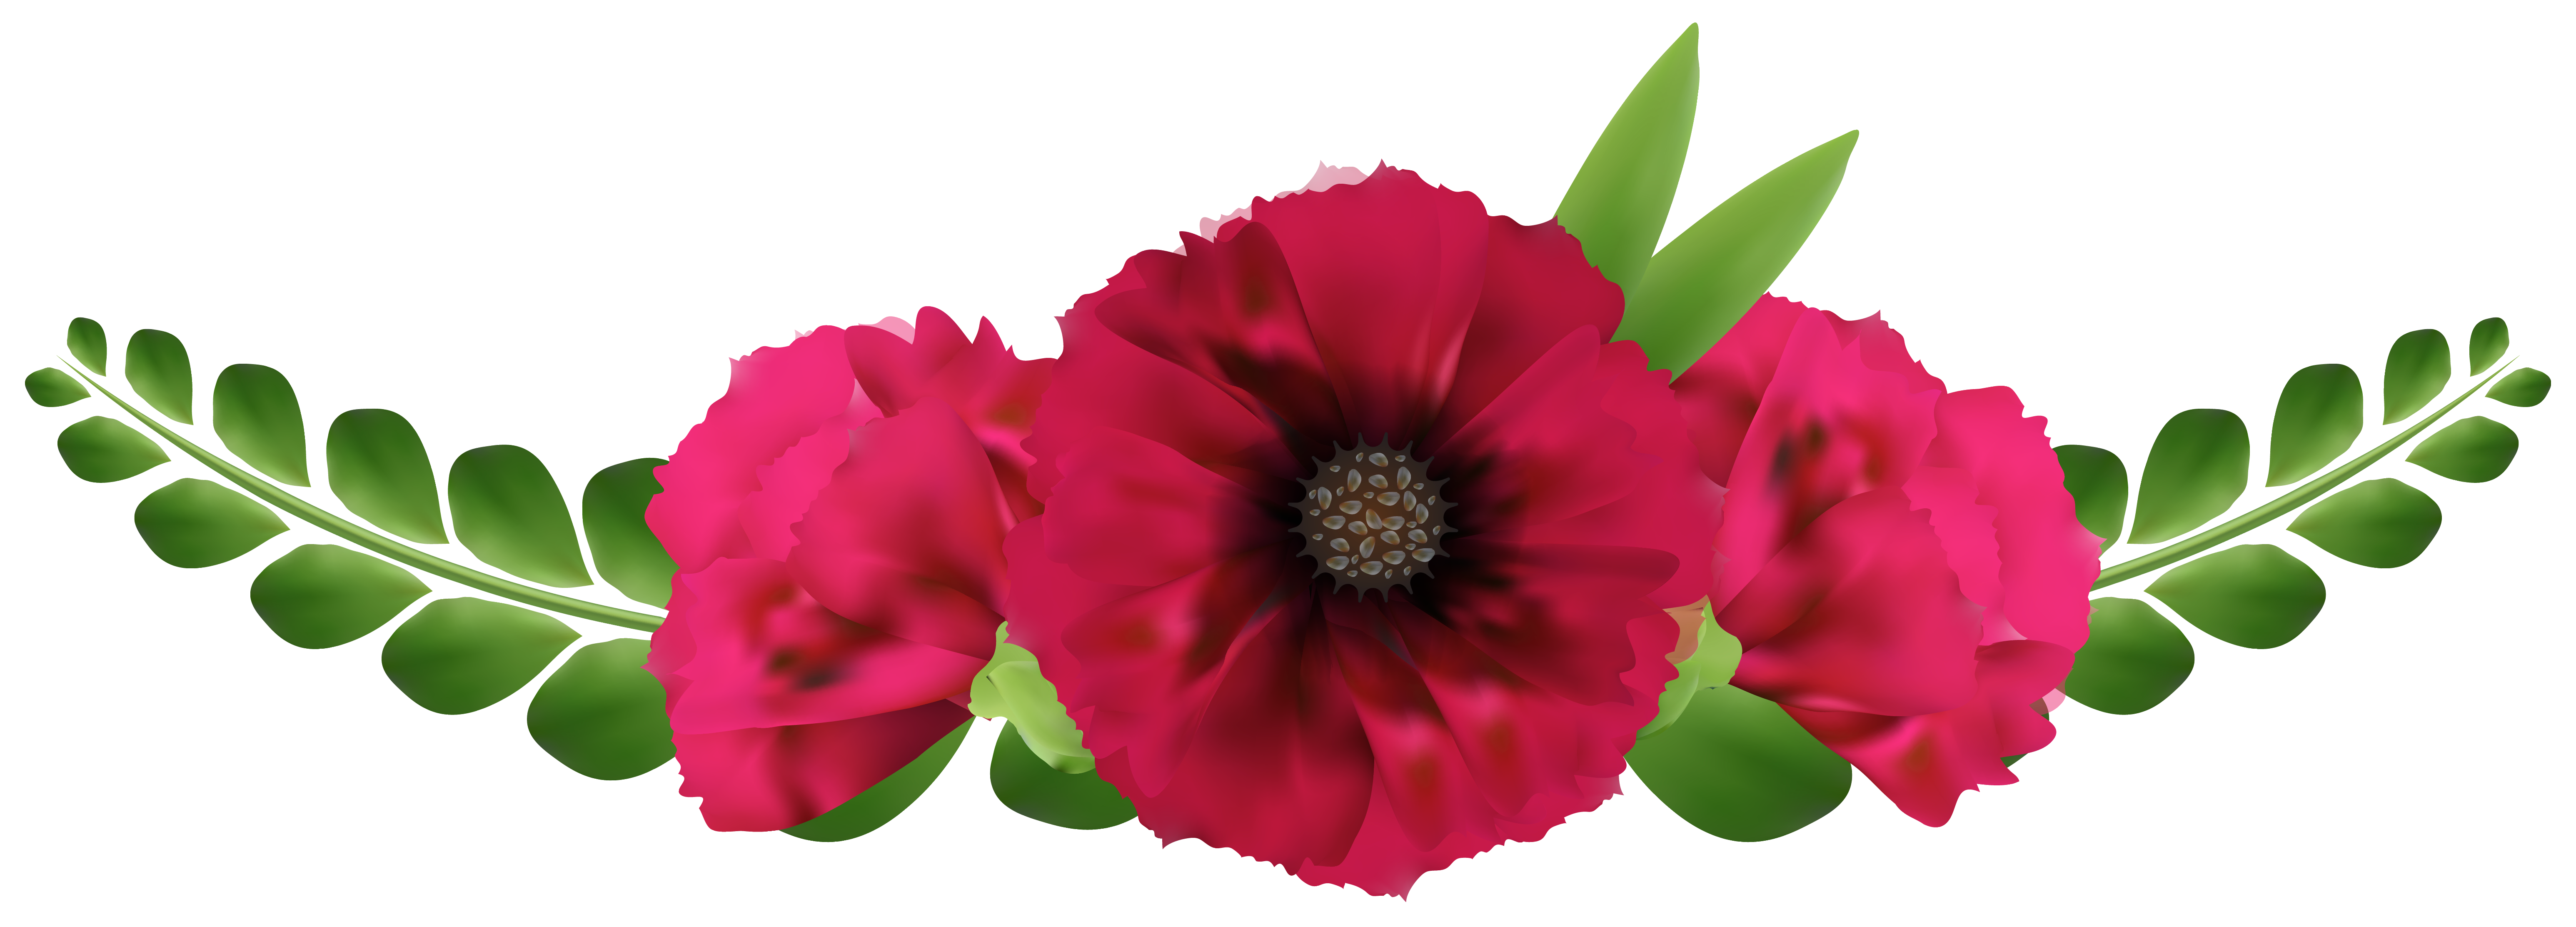 Beautiful flower clipart at. Flowers png picture transparent library